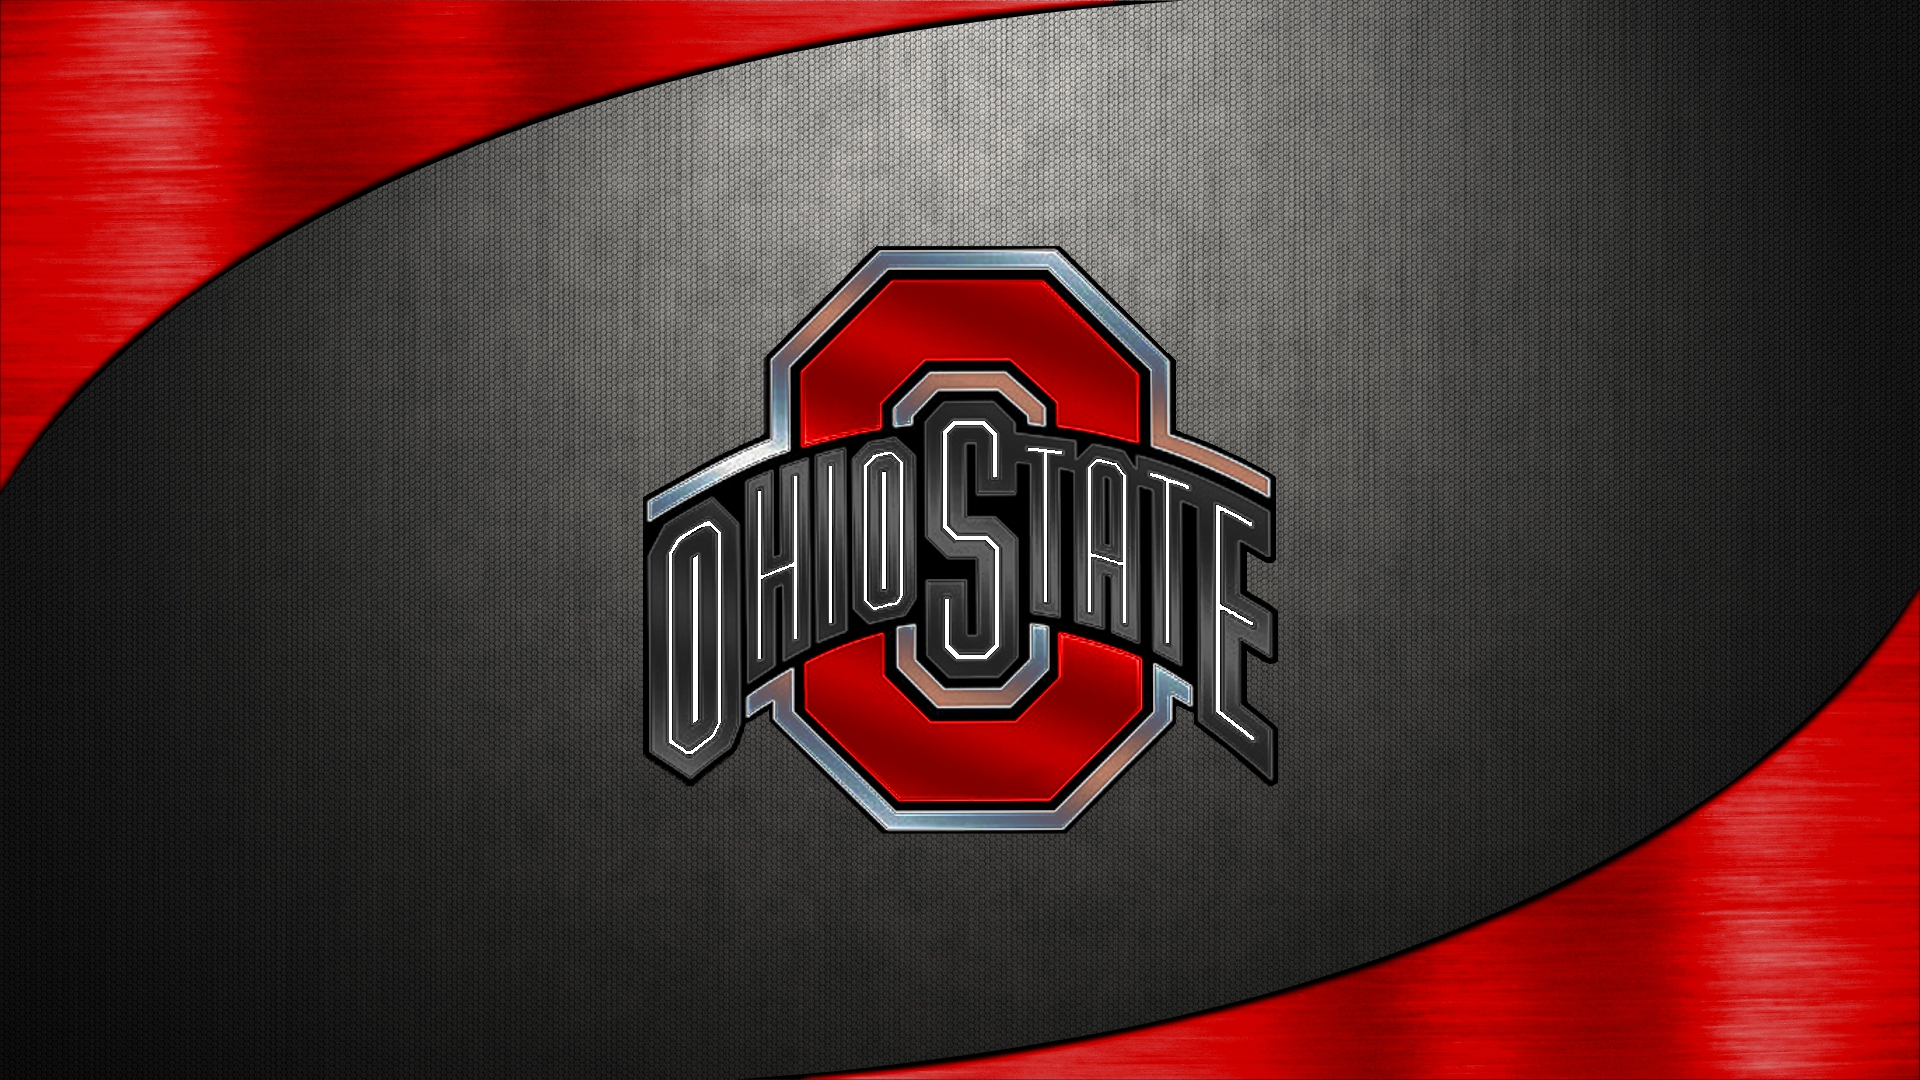 OHIO STATE BUCKEYES college football 20 wallpaper 1920x1080